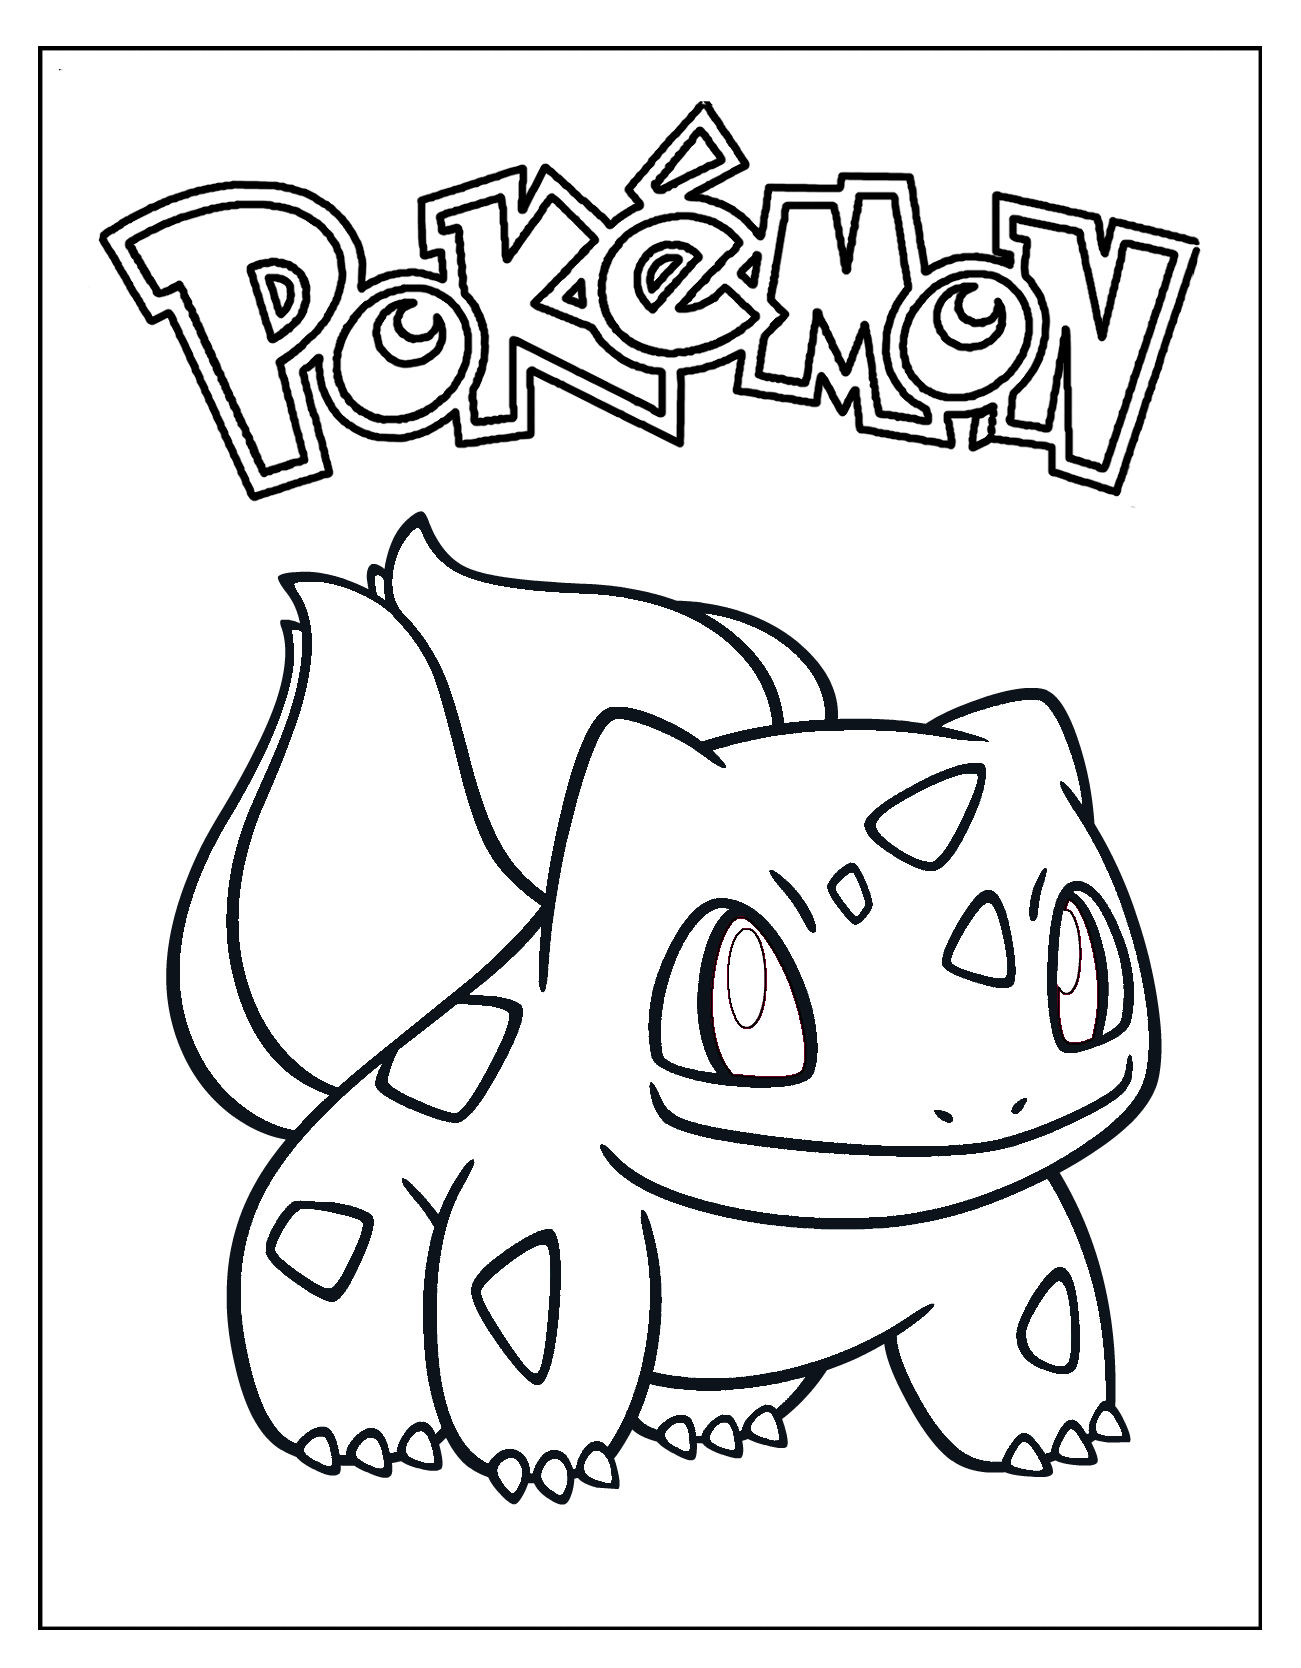 Bulbasaur Coloring Sheet Coloring Pages Superhero Coloring Pages Pikachu Coloring Page